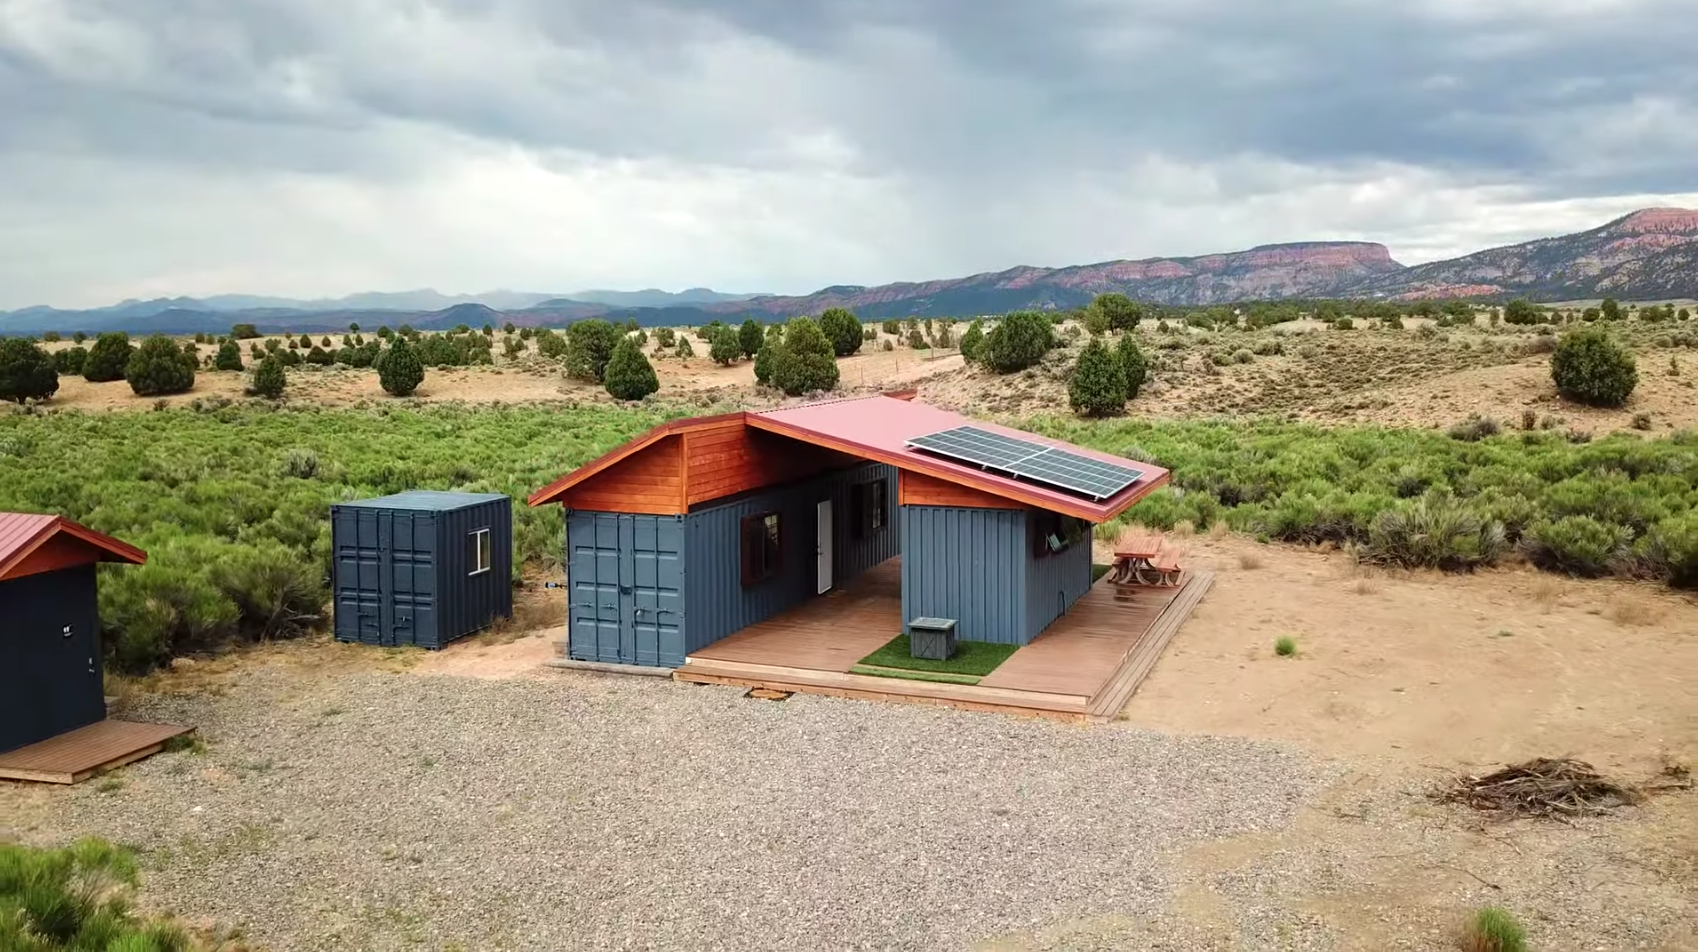 See Some Of Utah's Most Beautiful Scenery With The Aquarius Trail Hut System